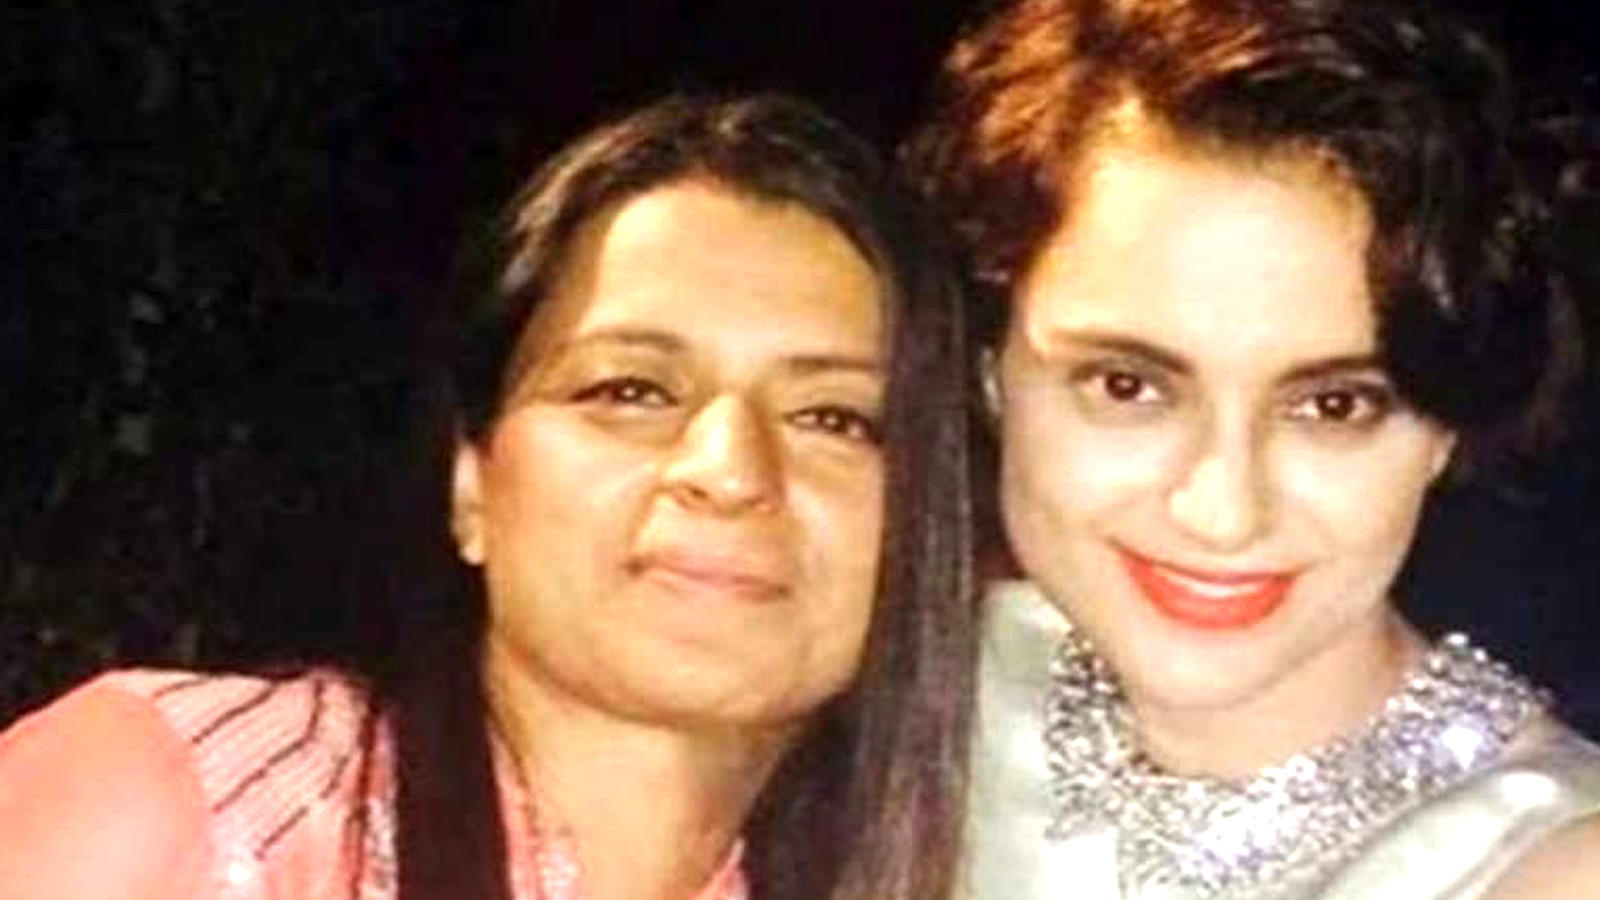 Rangoli Chandel talks about Hrithik Roshan's sister Sunaina Roshan in a social media post